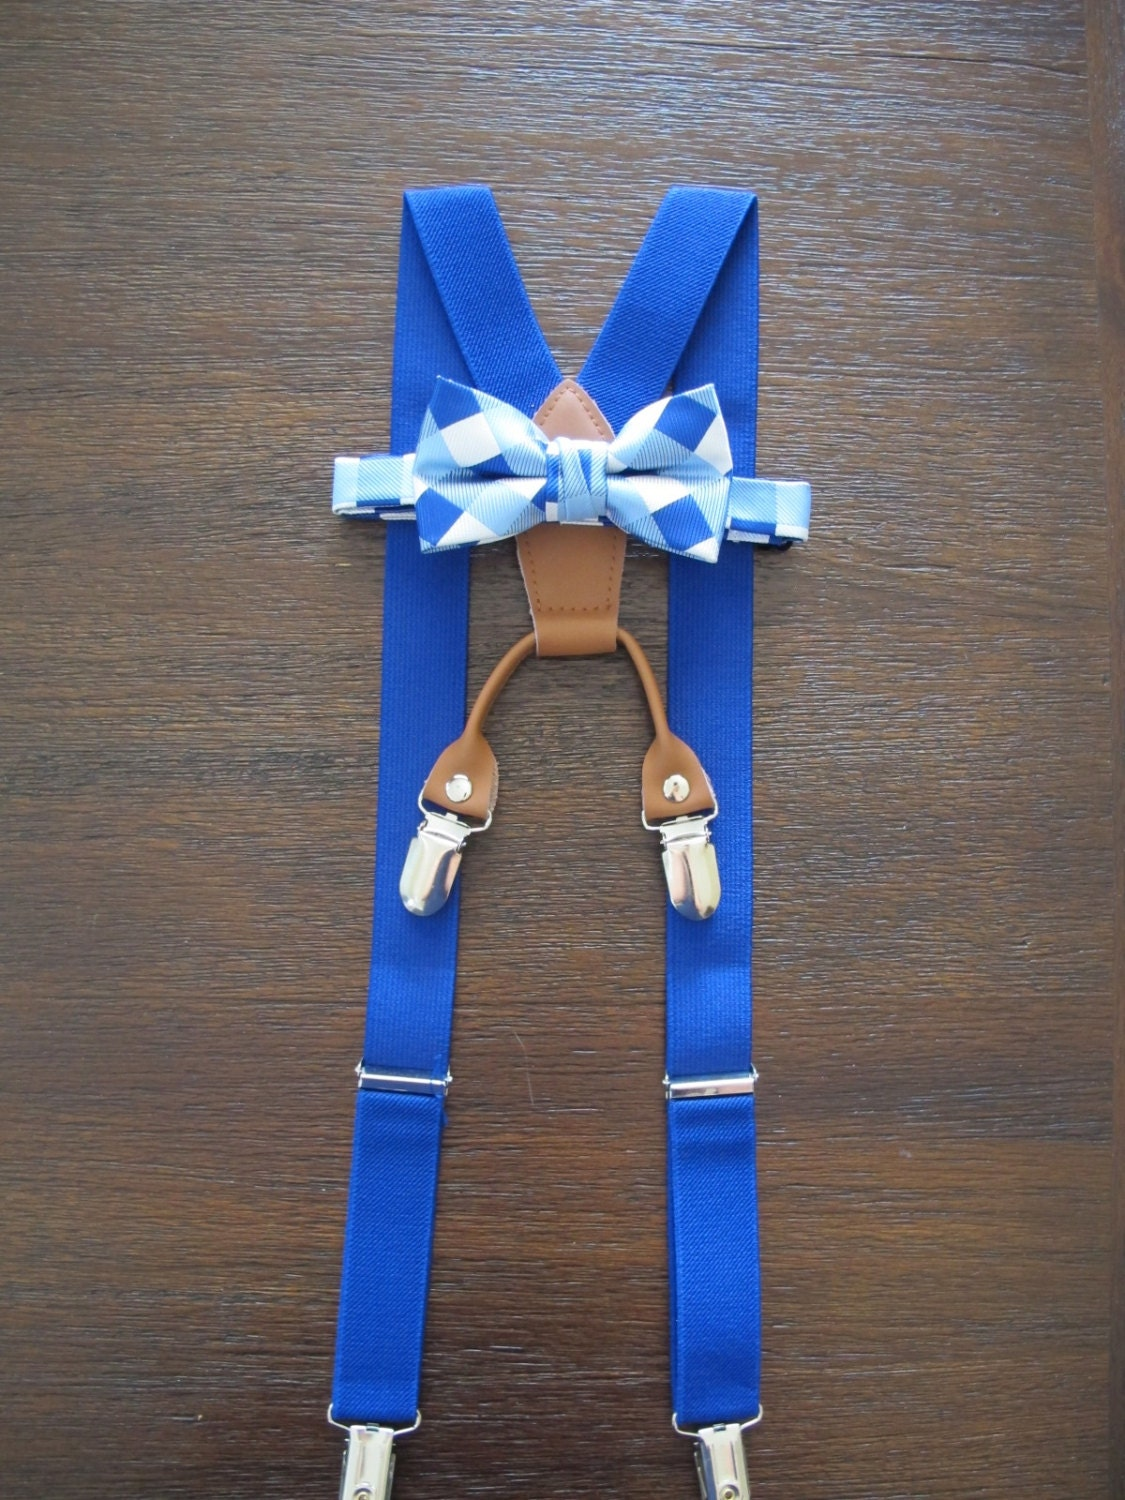 Bow tie and suspenders set are made out of % high quality cotton fabric and are hand/machine sewn. The suspender straps are adjustable with a slider and easy to use suspender clips (4) with plastic grip teeth to protect material from damage.